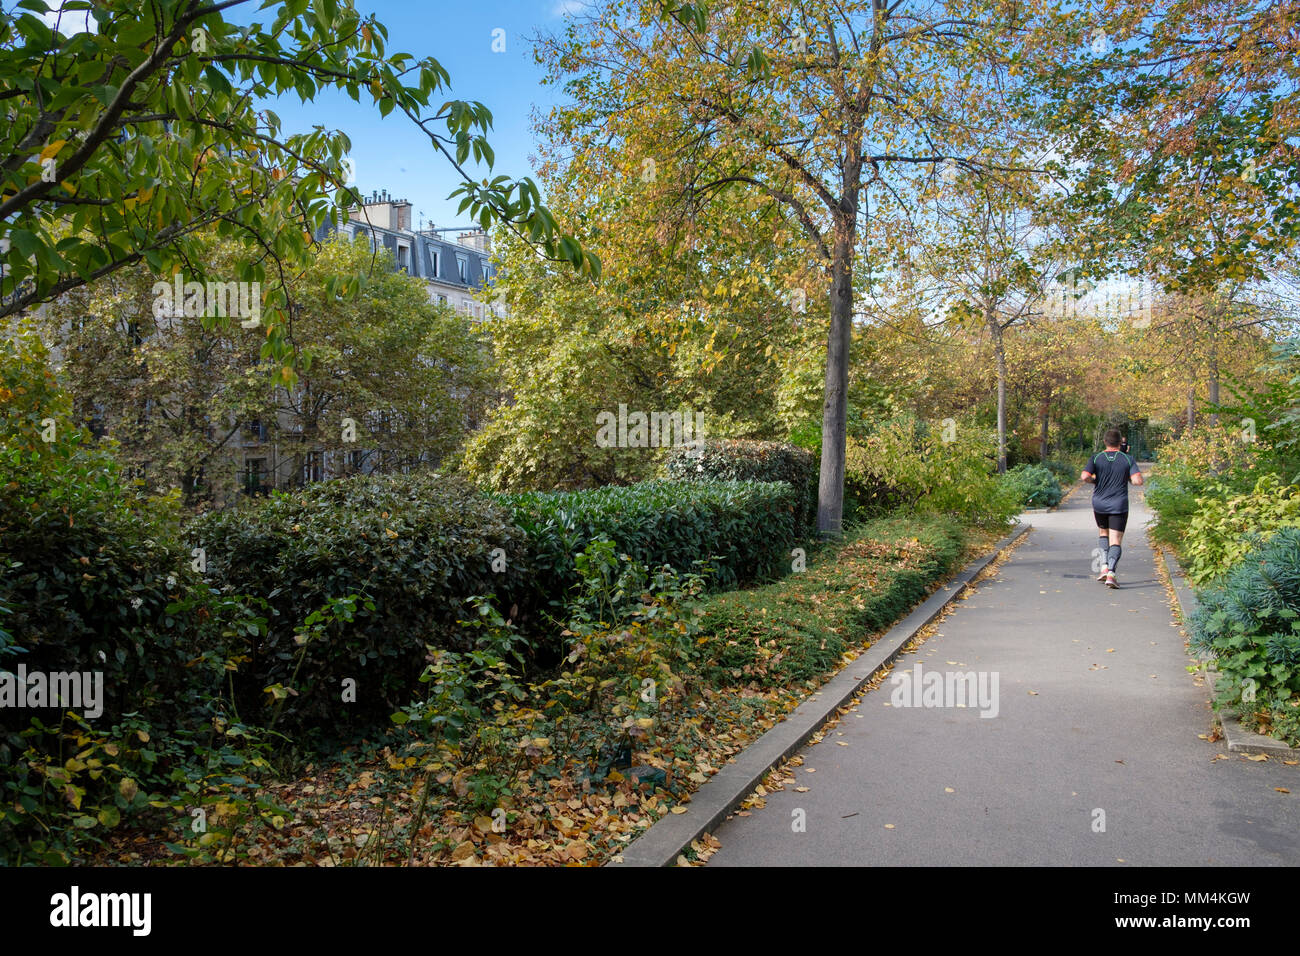 People enjoying The Promenade Plantée or Coulée verte René-Dumont, Elevated park in 12th arrondissement, Paris, France Stock Photo